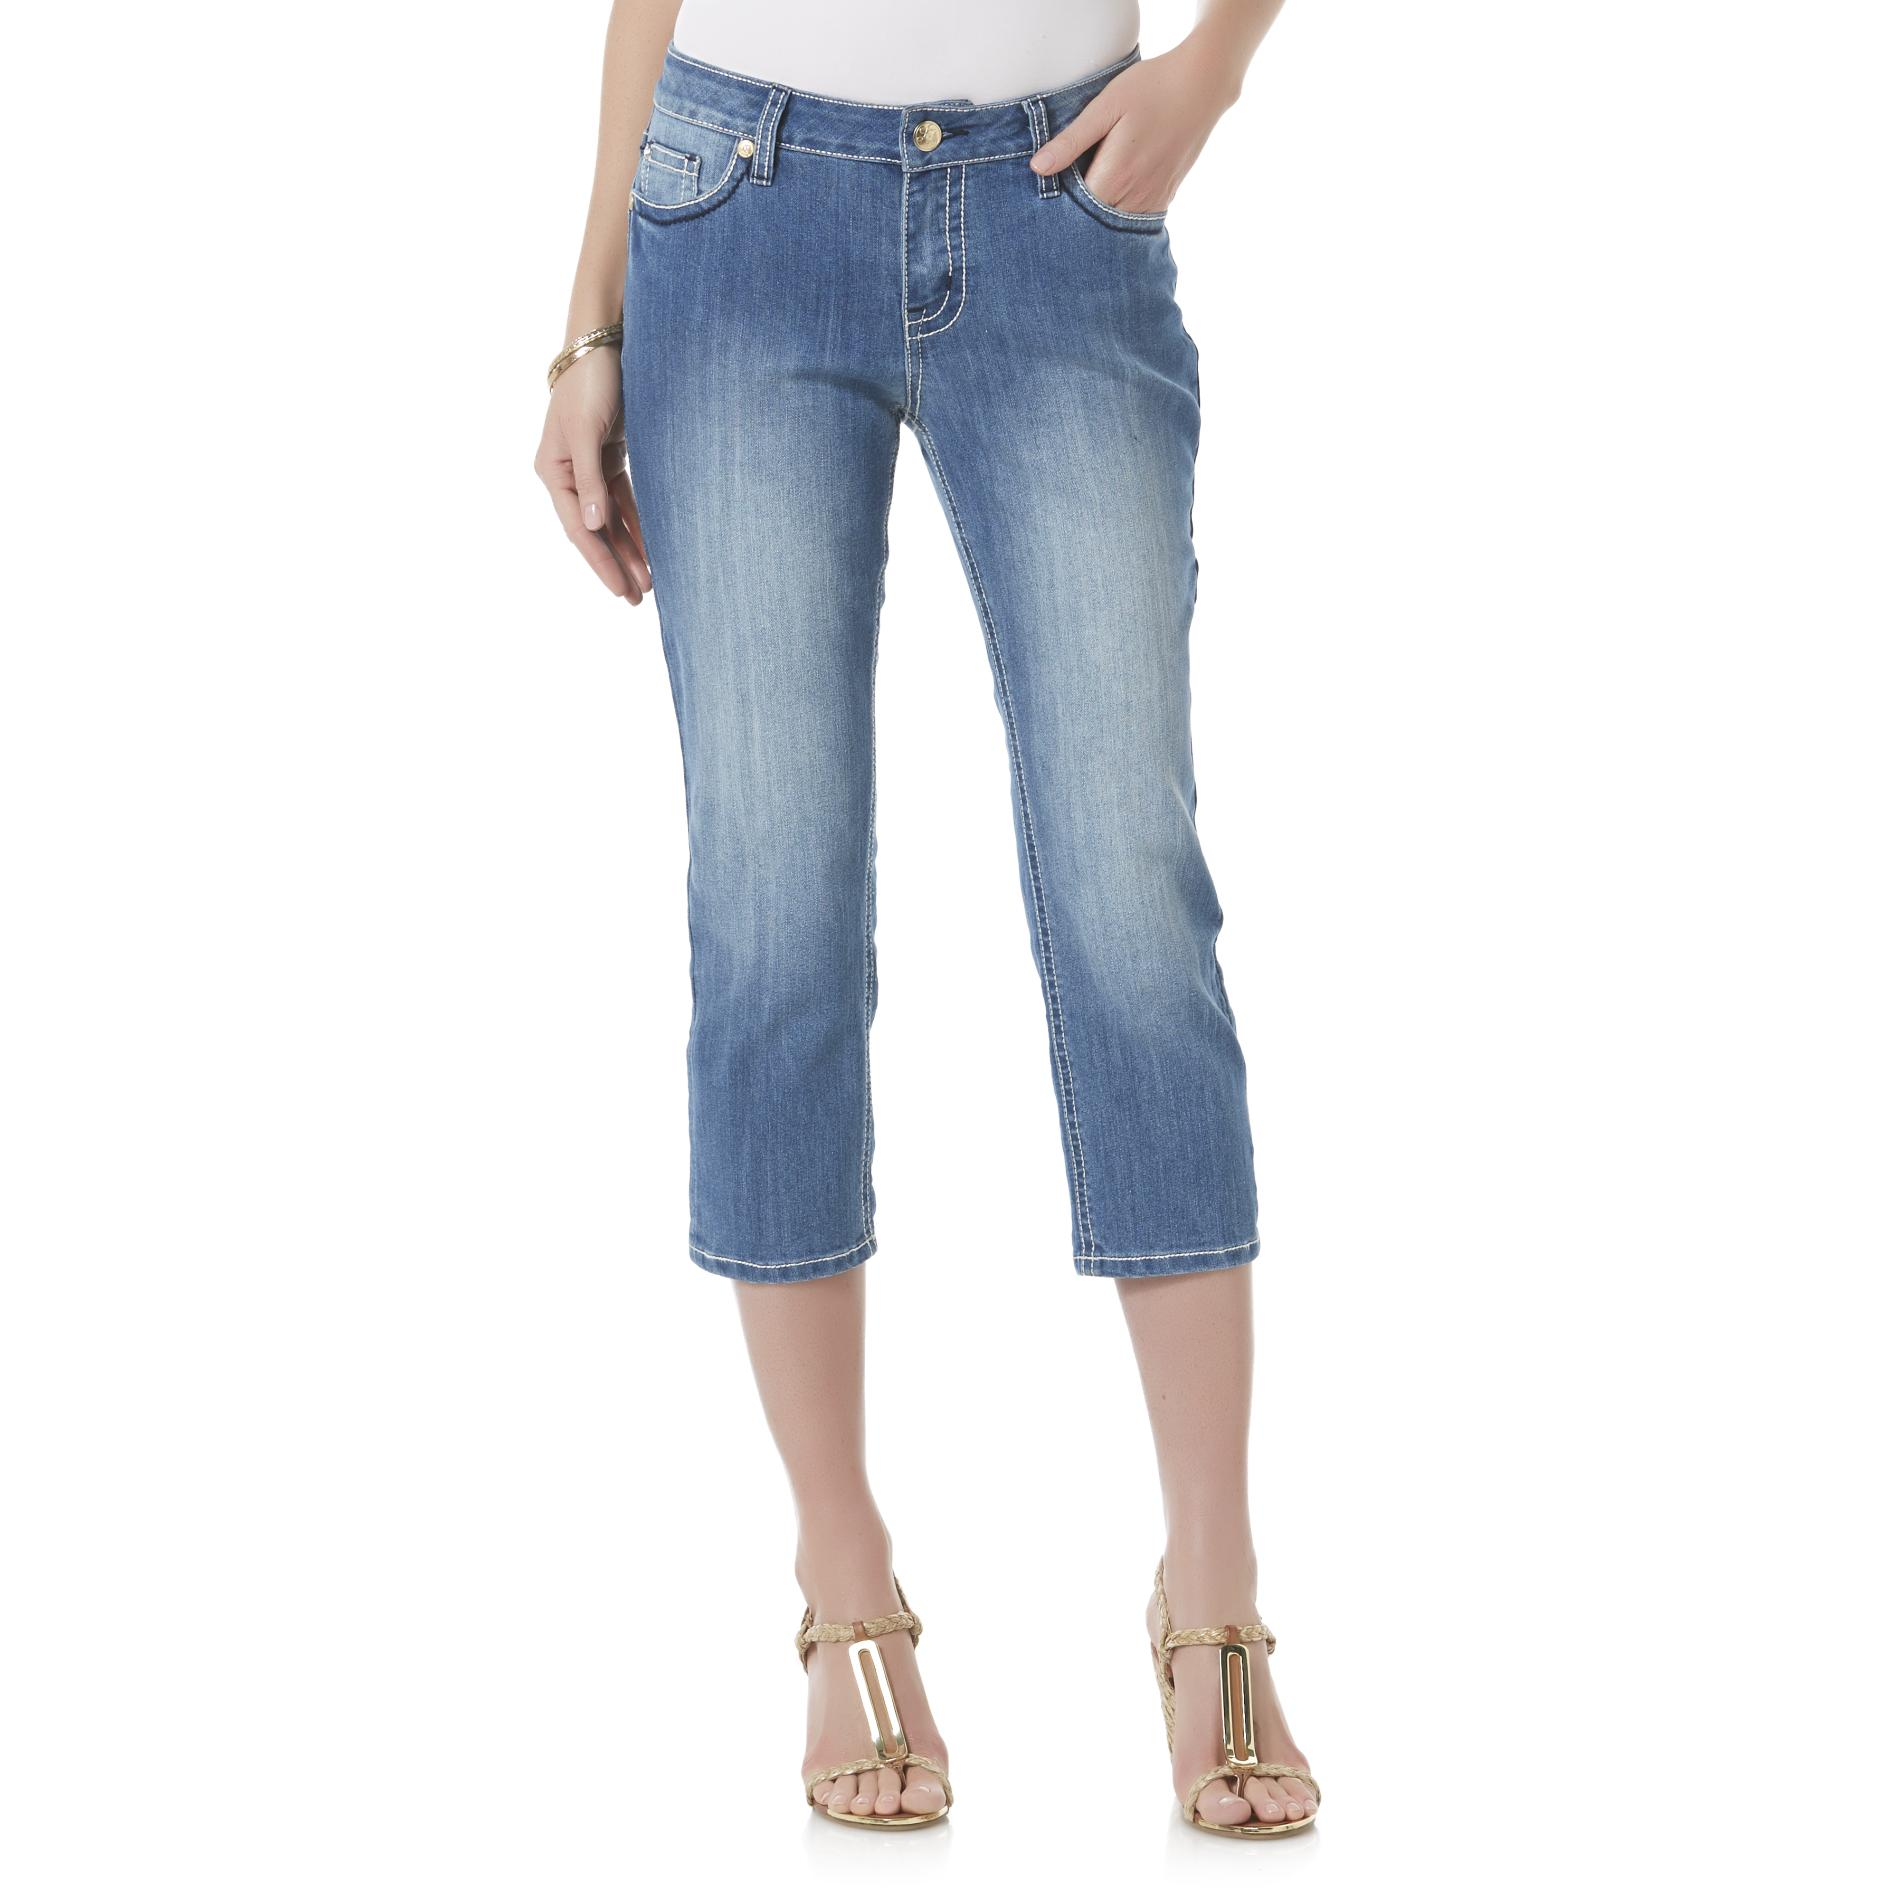 Love Indigo Women's Embellished Capri Jeans - Medium Wash